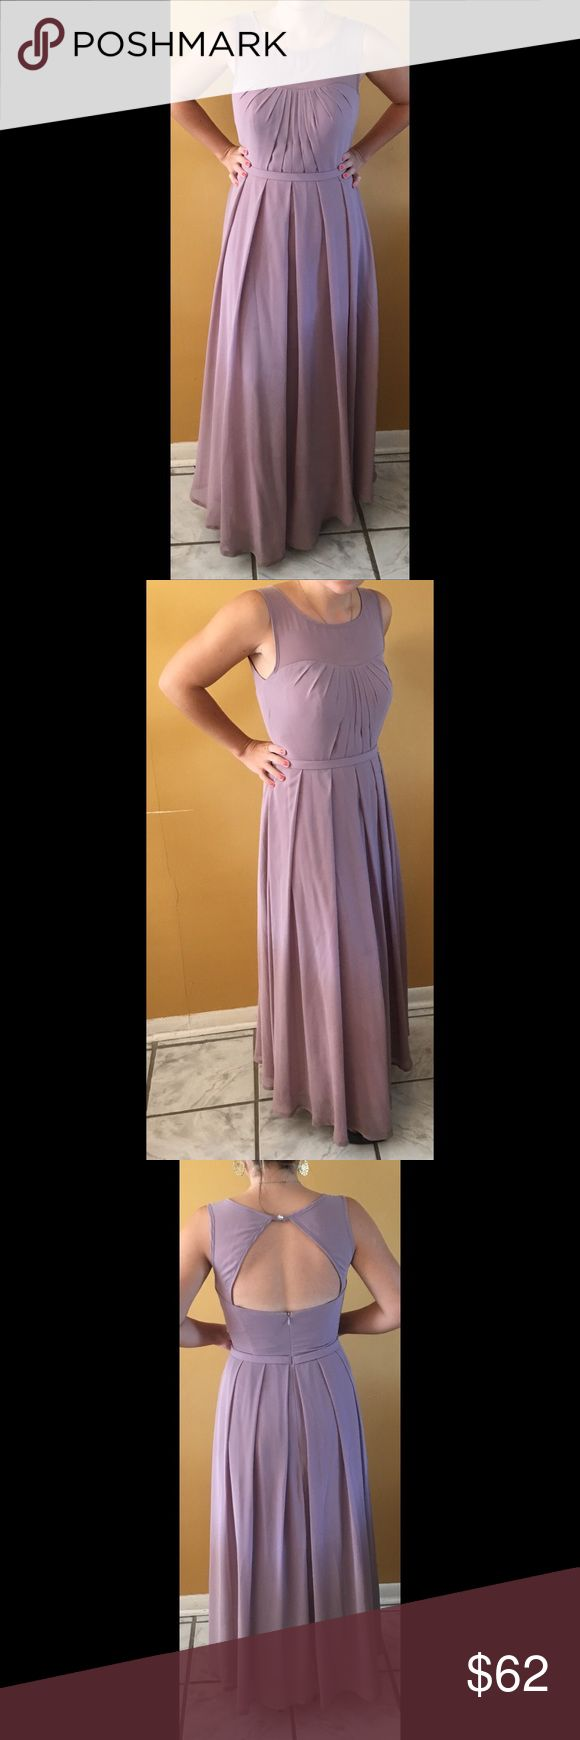 Azazie Ambrosia Bridesmaid Dress Size A6. 100% Polyester. Hemmed to accommodate my height of 5'2 with 3 in heels. Price reflects small stains that can be fixed with a dry clean. Azazie Dresses